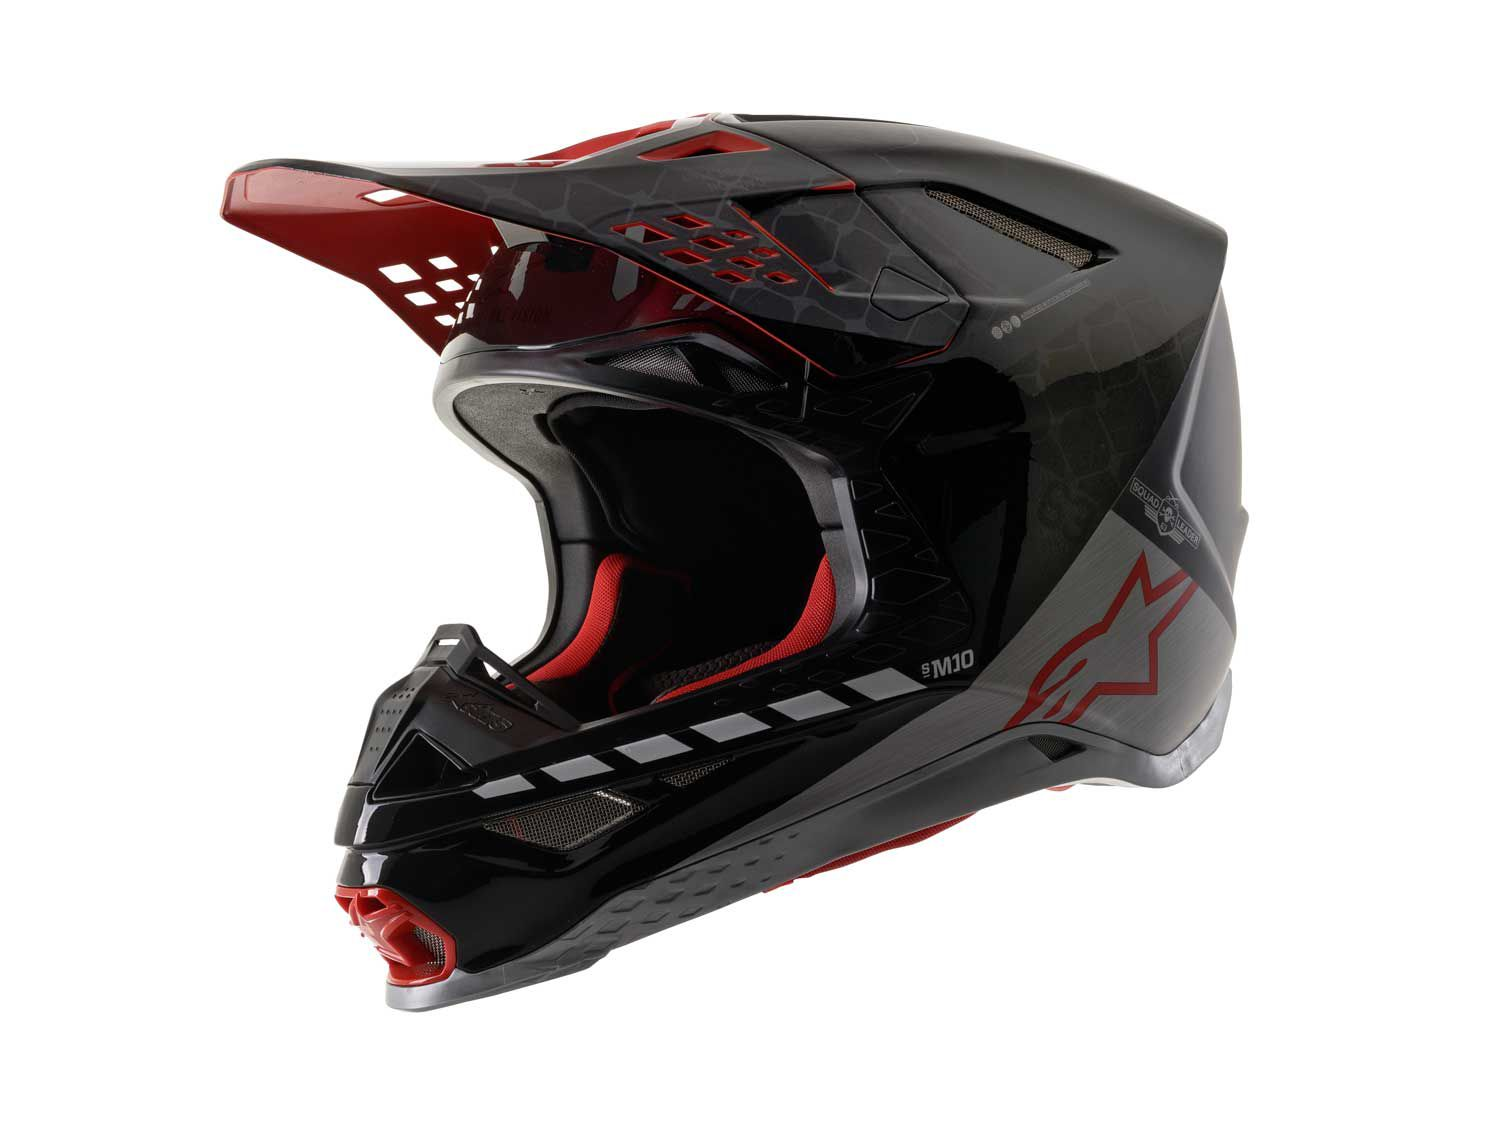 Throughout the Monster Energy AMA Supercross season, Alpinestars releases multiple limited-edition Supertech M10 helmets. For the 2020 San Diego Supercross, the Italian brand went with a black/silver/red matte and glossy color scheme (pictured).